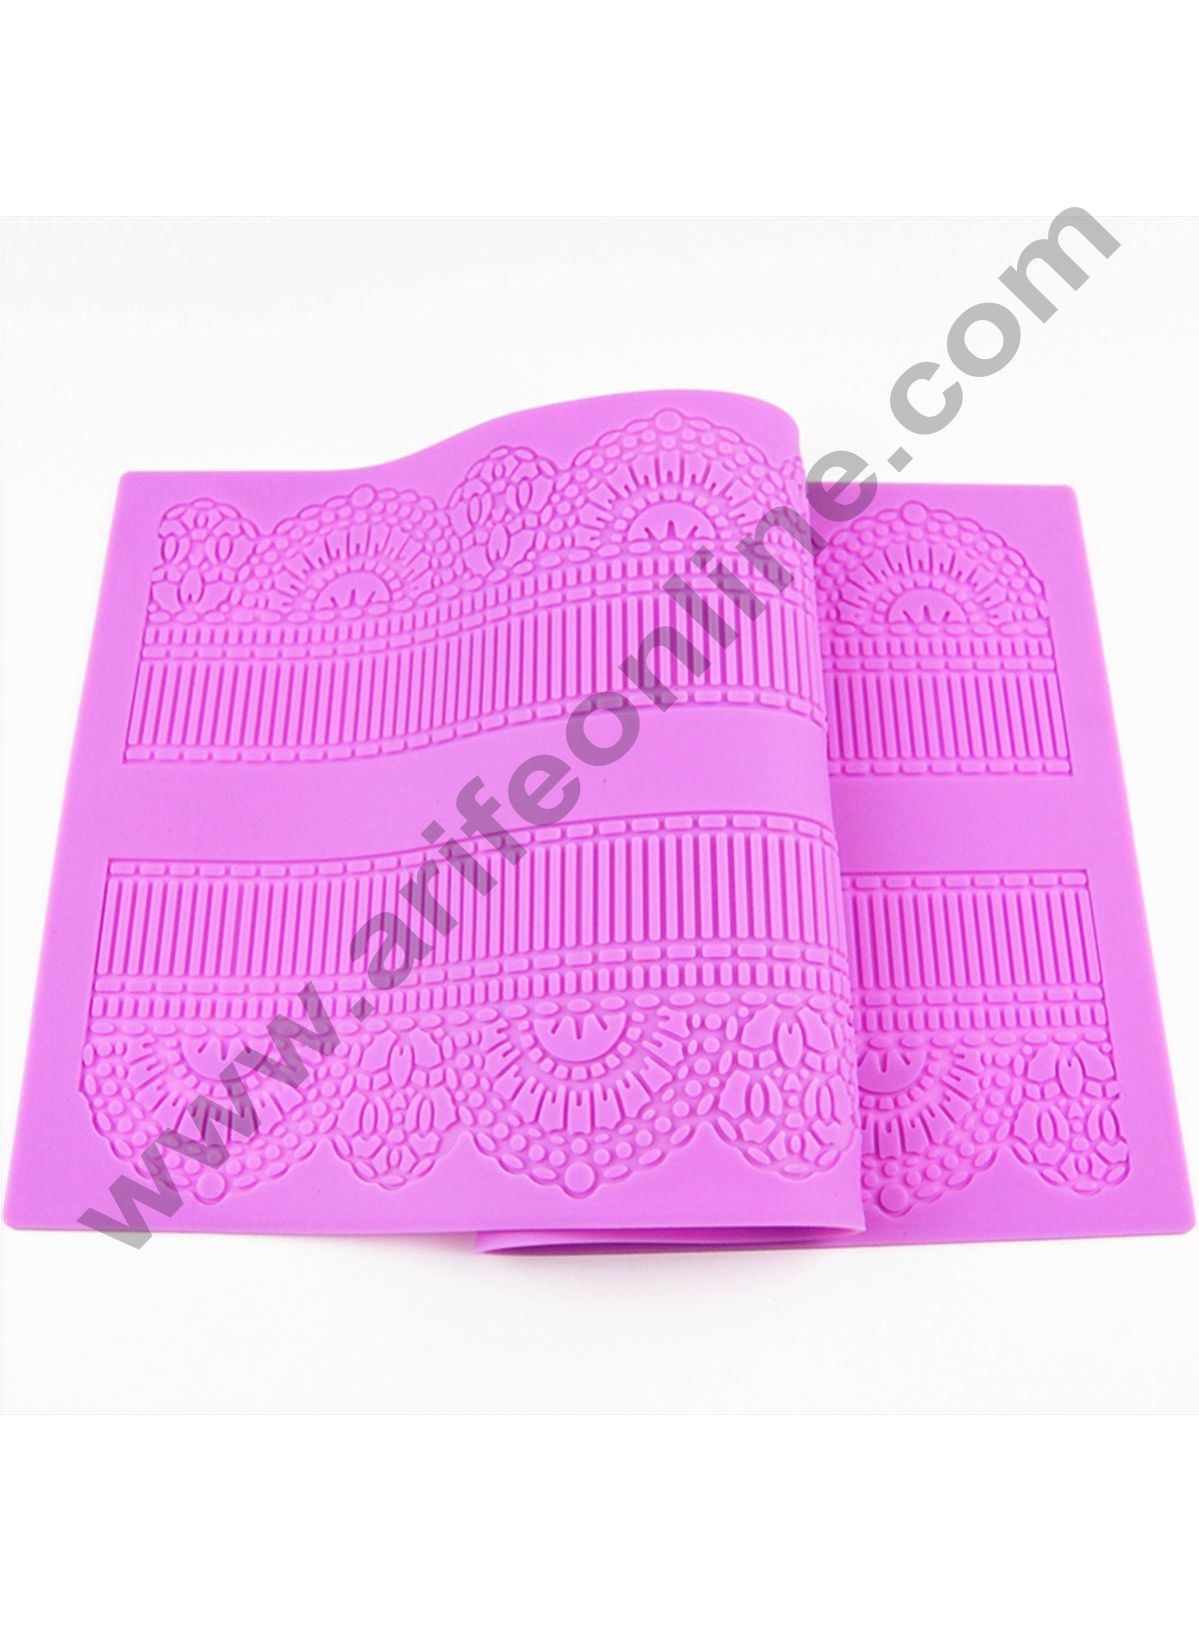 Cake Decor Dessert Border Flower Pattern Silicone Mat Fondant Cake Lace Embossed Cake Mold Sugar Lace Mat Cake Decorating Tool Embossing Sguar lace pad